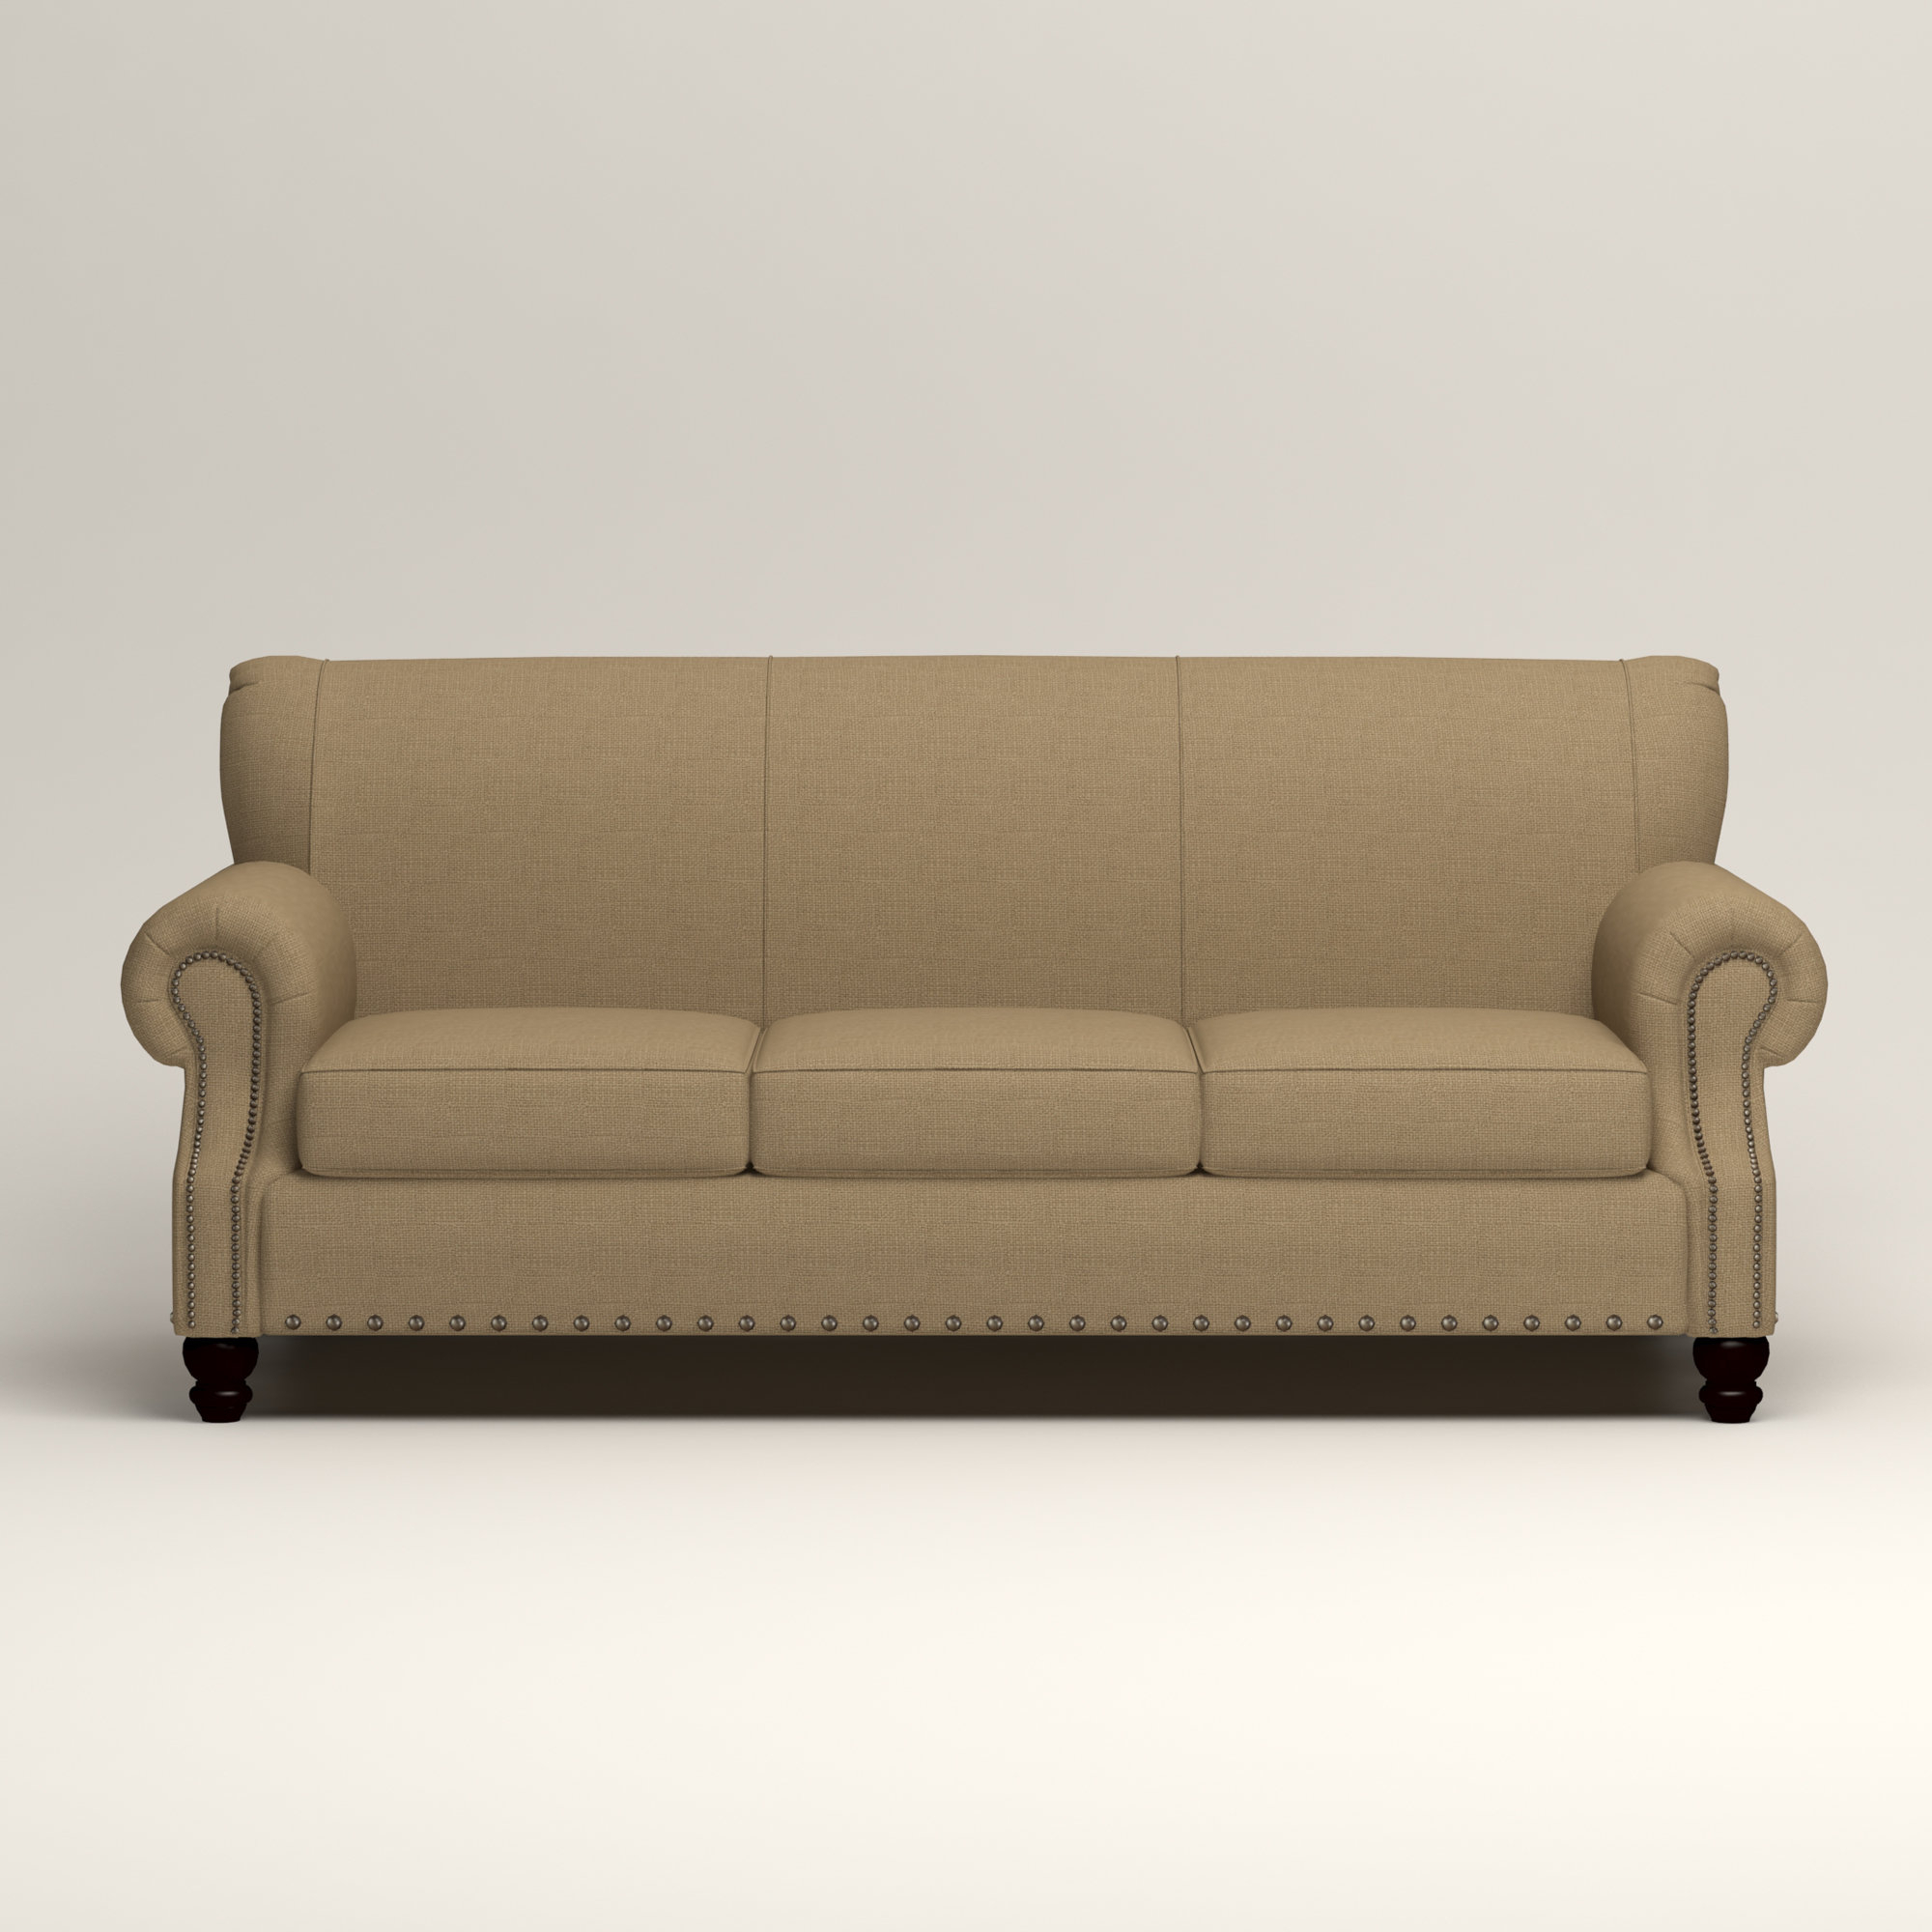 Birch Lane™ Landry Sofa & Reviews | Wayfair Throughout Landry Sofa Chairs (Image 9 of 20)